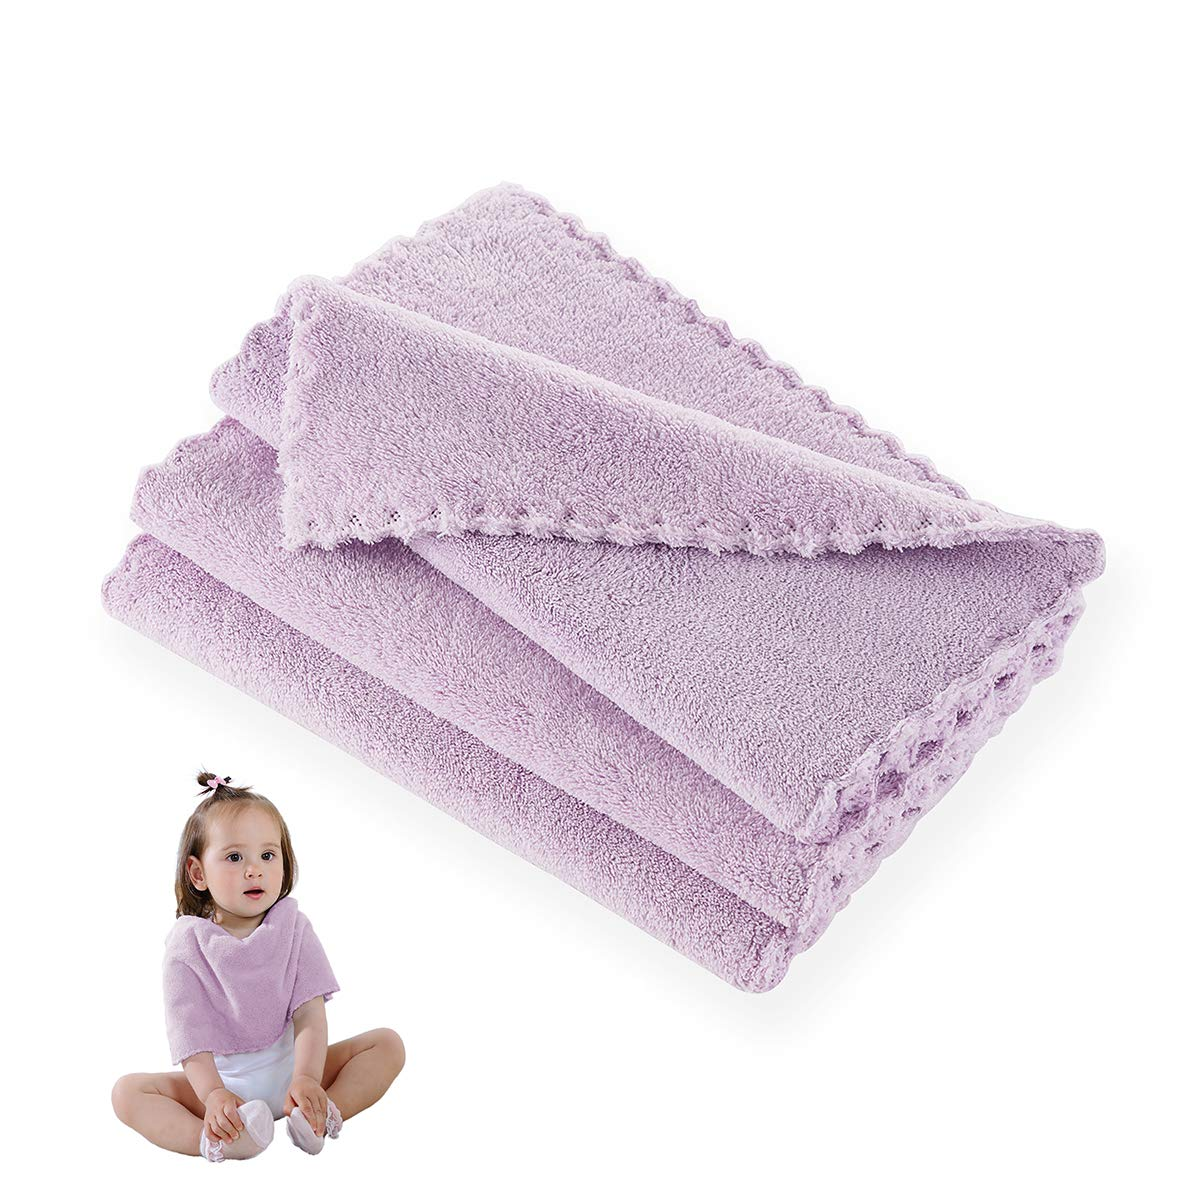 Hand Towel, Baby Washcloth Wipes, Extremely Soft & Absorbent, Extra Durable & Hypoallergenic, 3 Pack Set, 10 x 20 Inches, Perfect Cloth for Sensitive Skin of All Age -- Light Purple by Xinrjojo